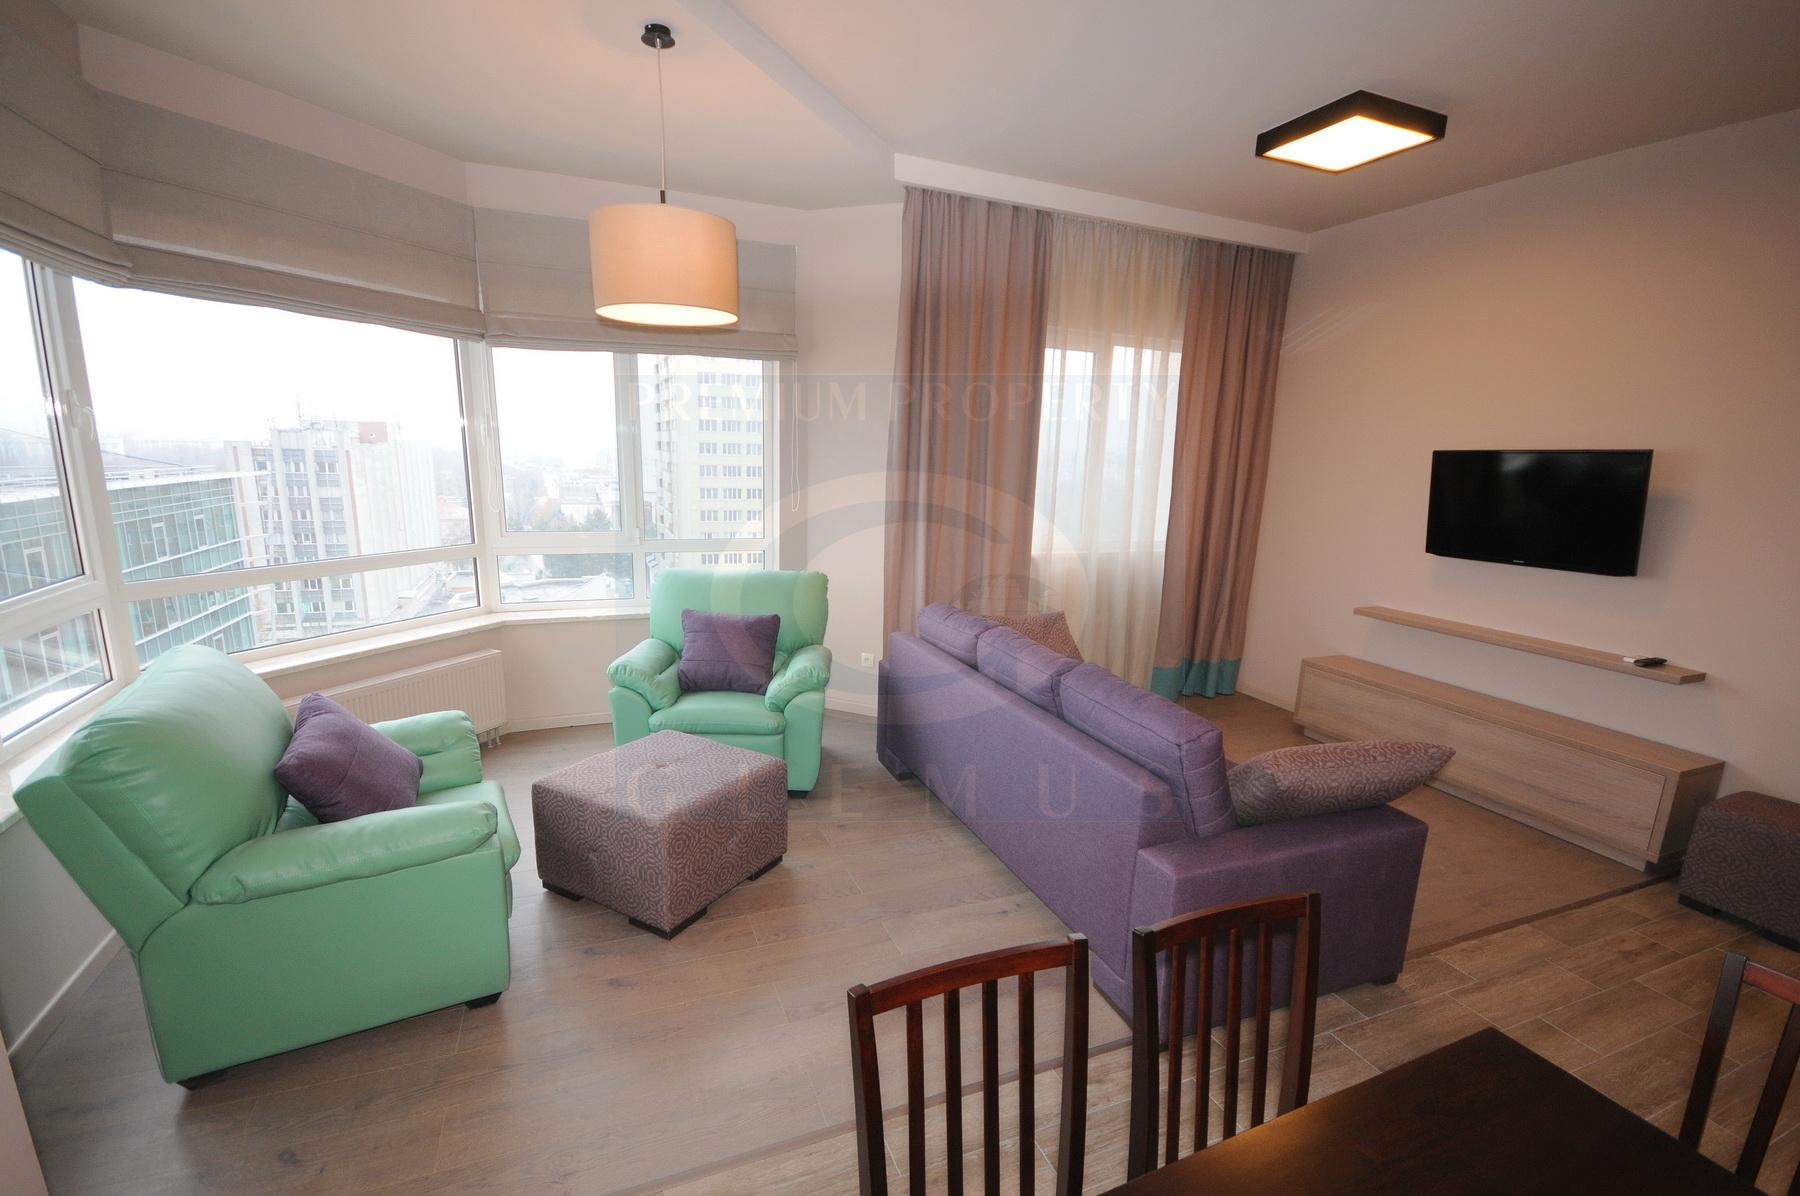 New, light apartment for rent on the high floor in Crown Plaza complex